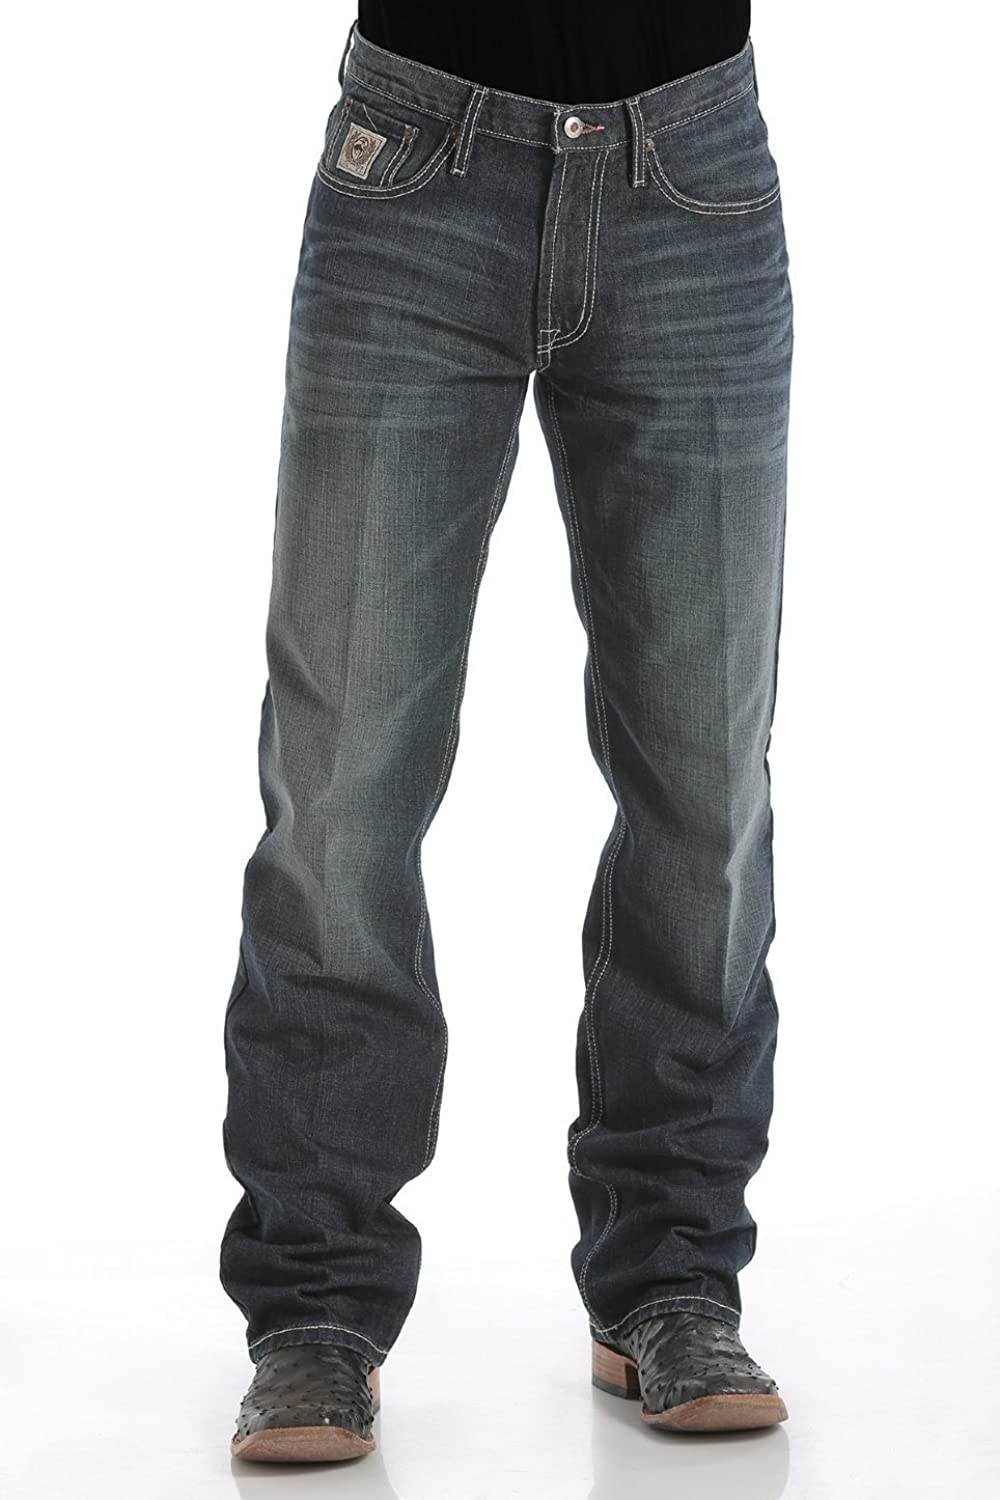 cheap Cinch Jeans White Label Relaxed Fit jeans - www.aegeepadova.org